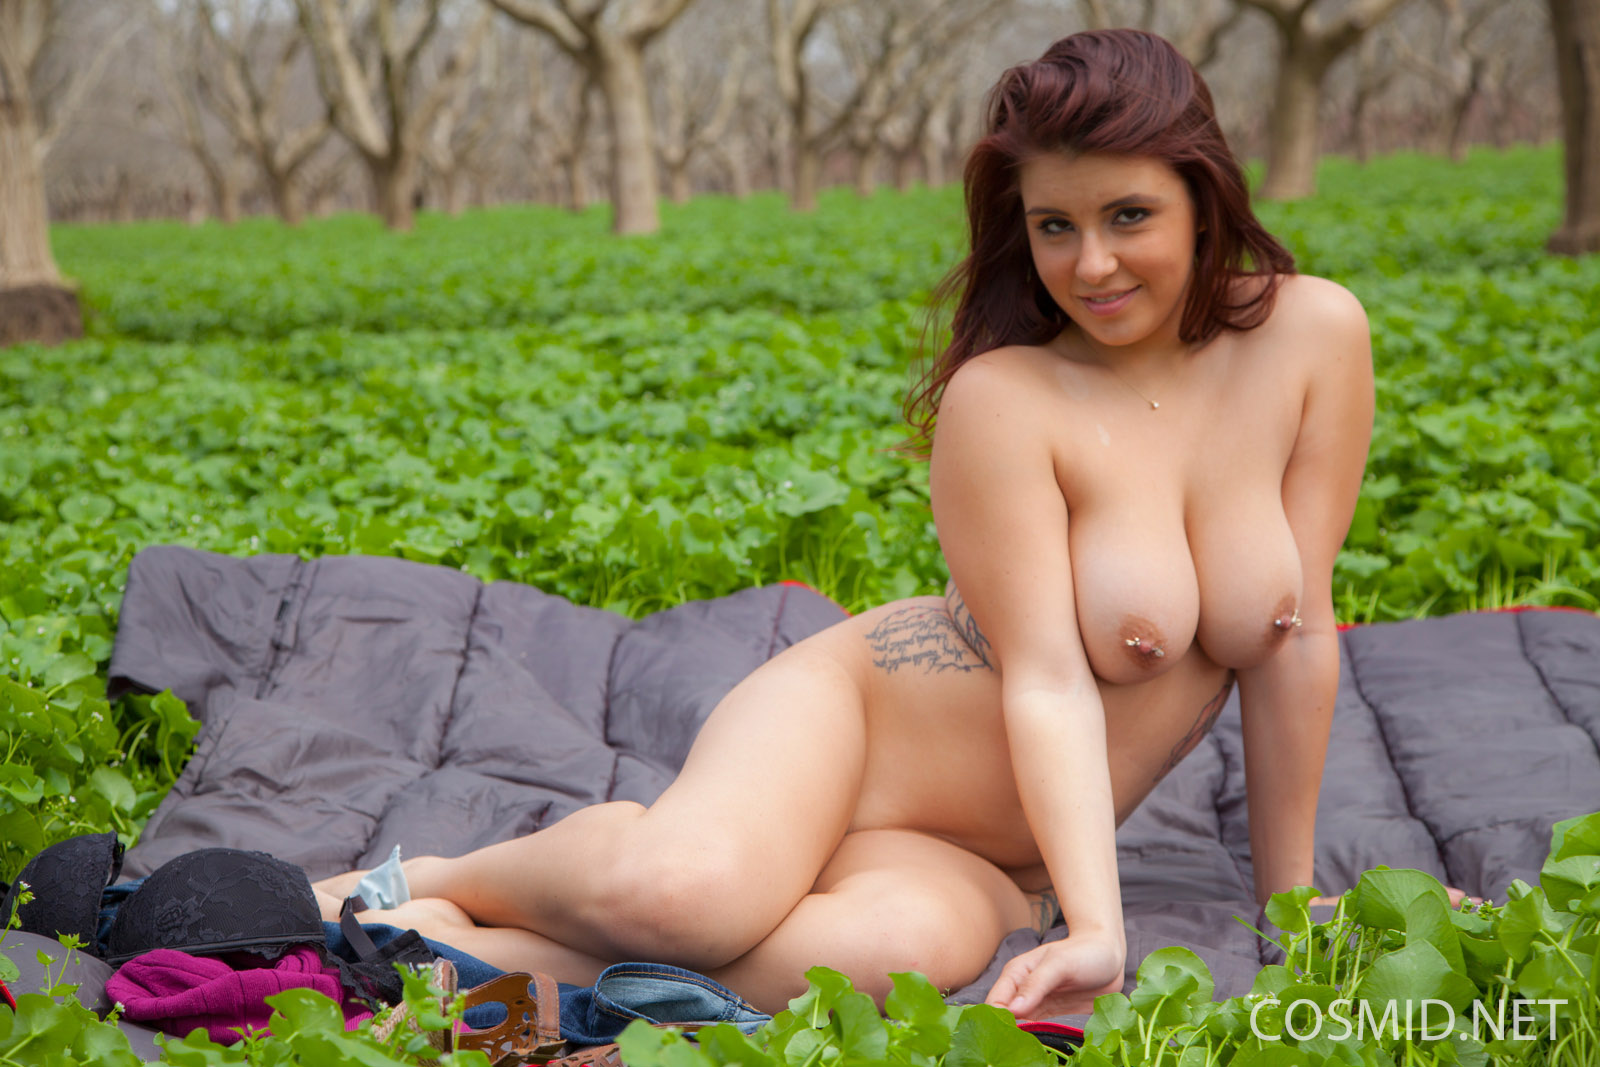 Sorry, Aubrey cosmid chase naked join